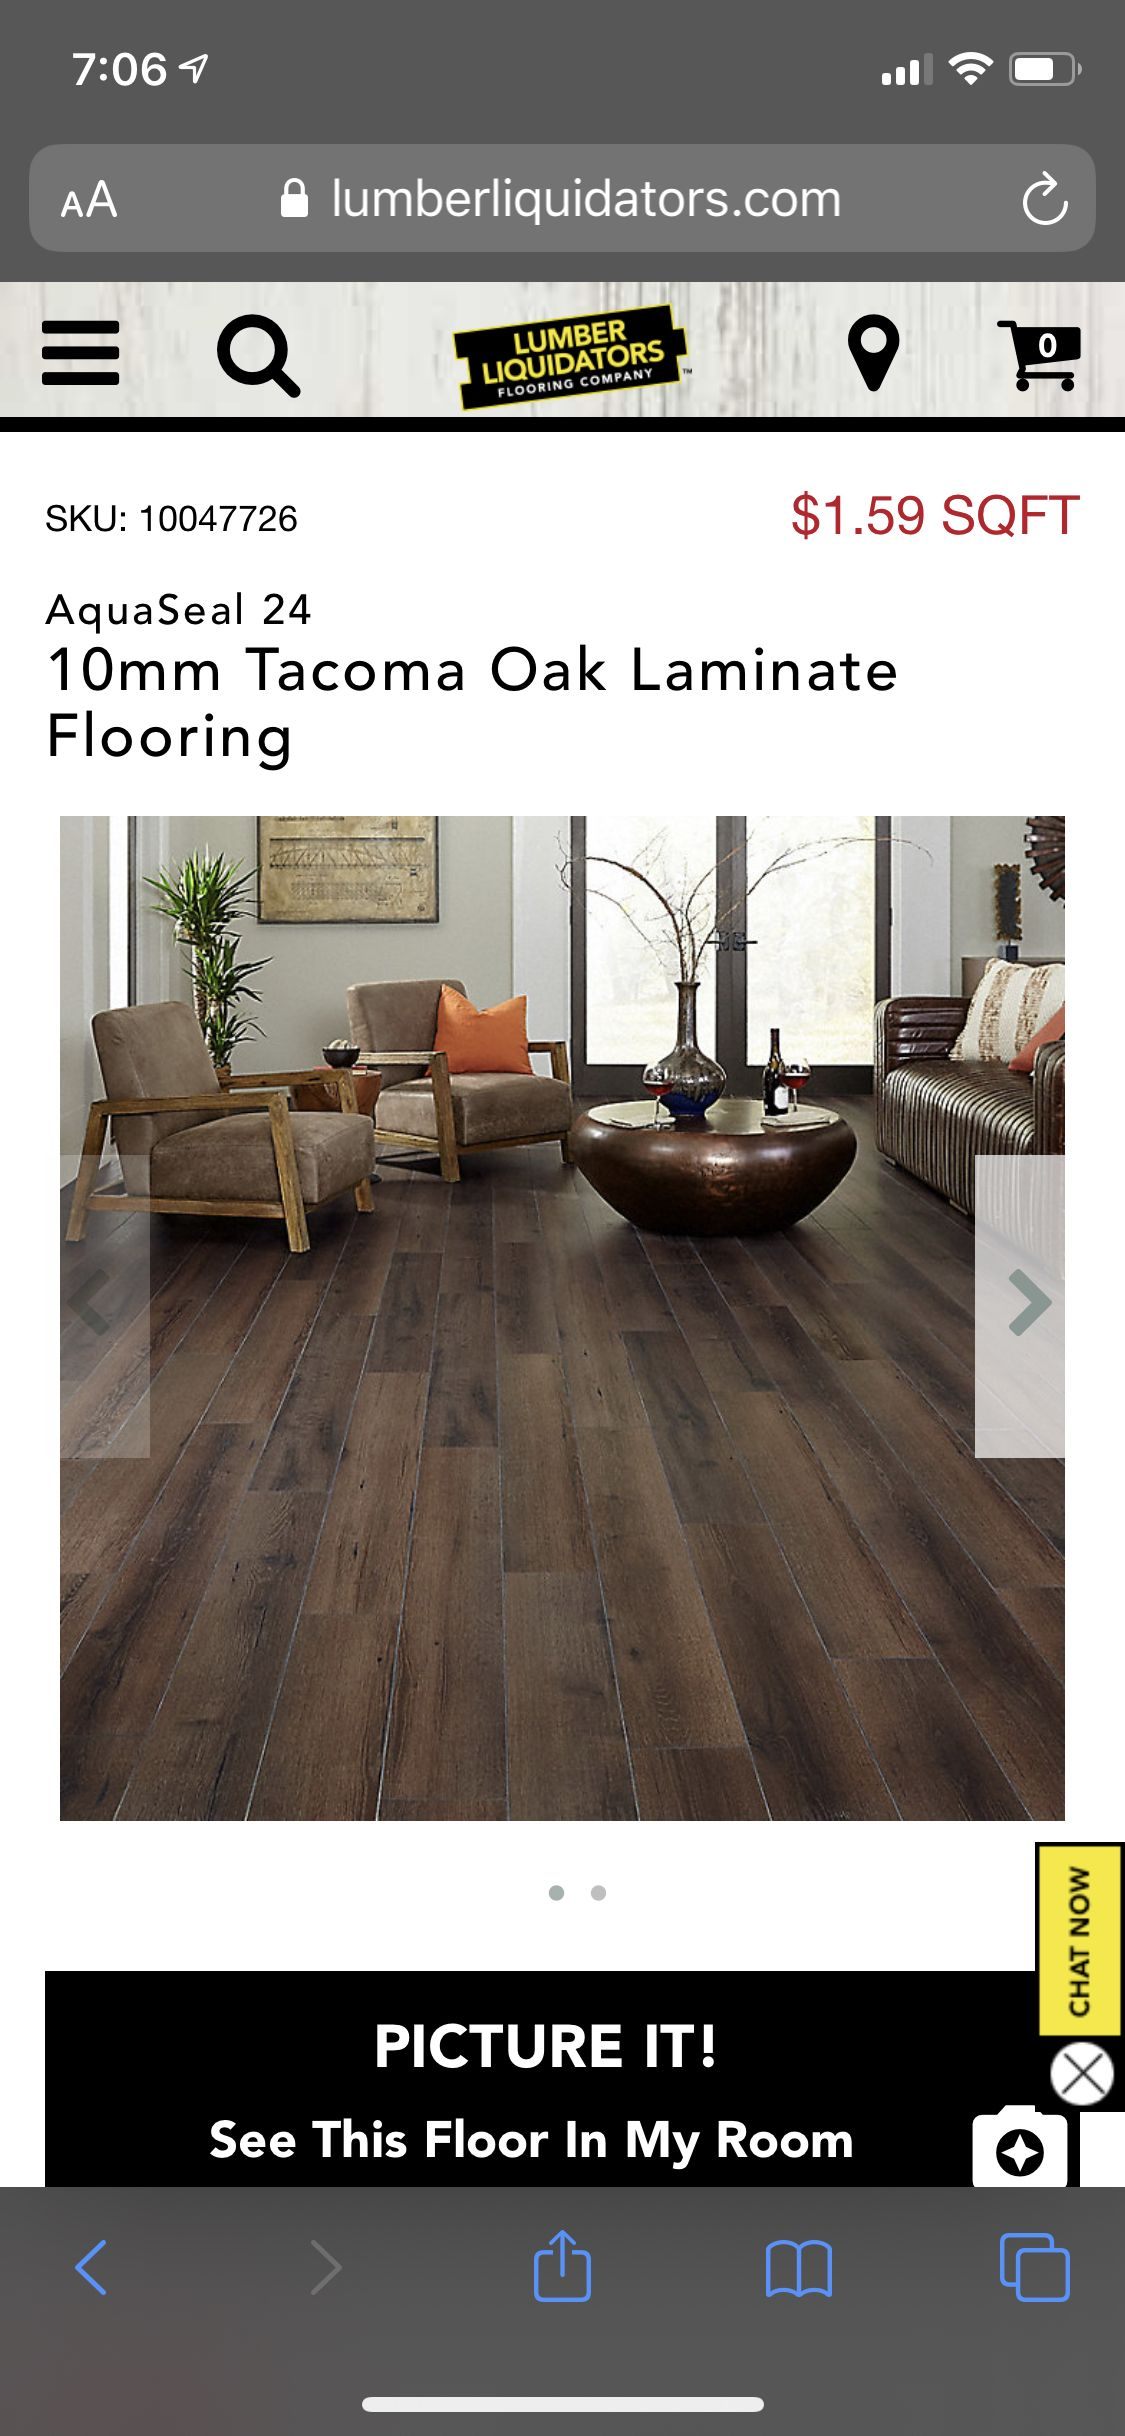 Pin By Angela Avillion On Flooring Oak Laminate Flooring Flooring Oak Laminate